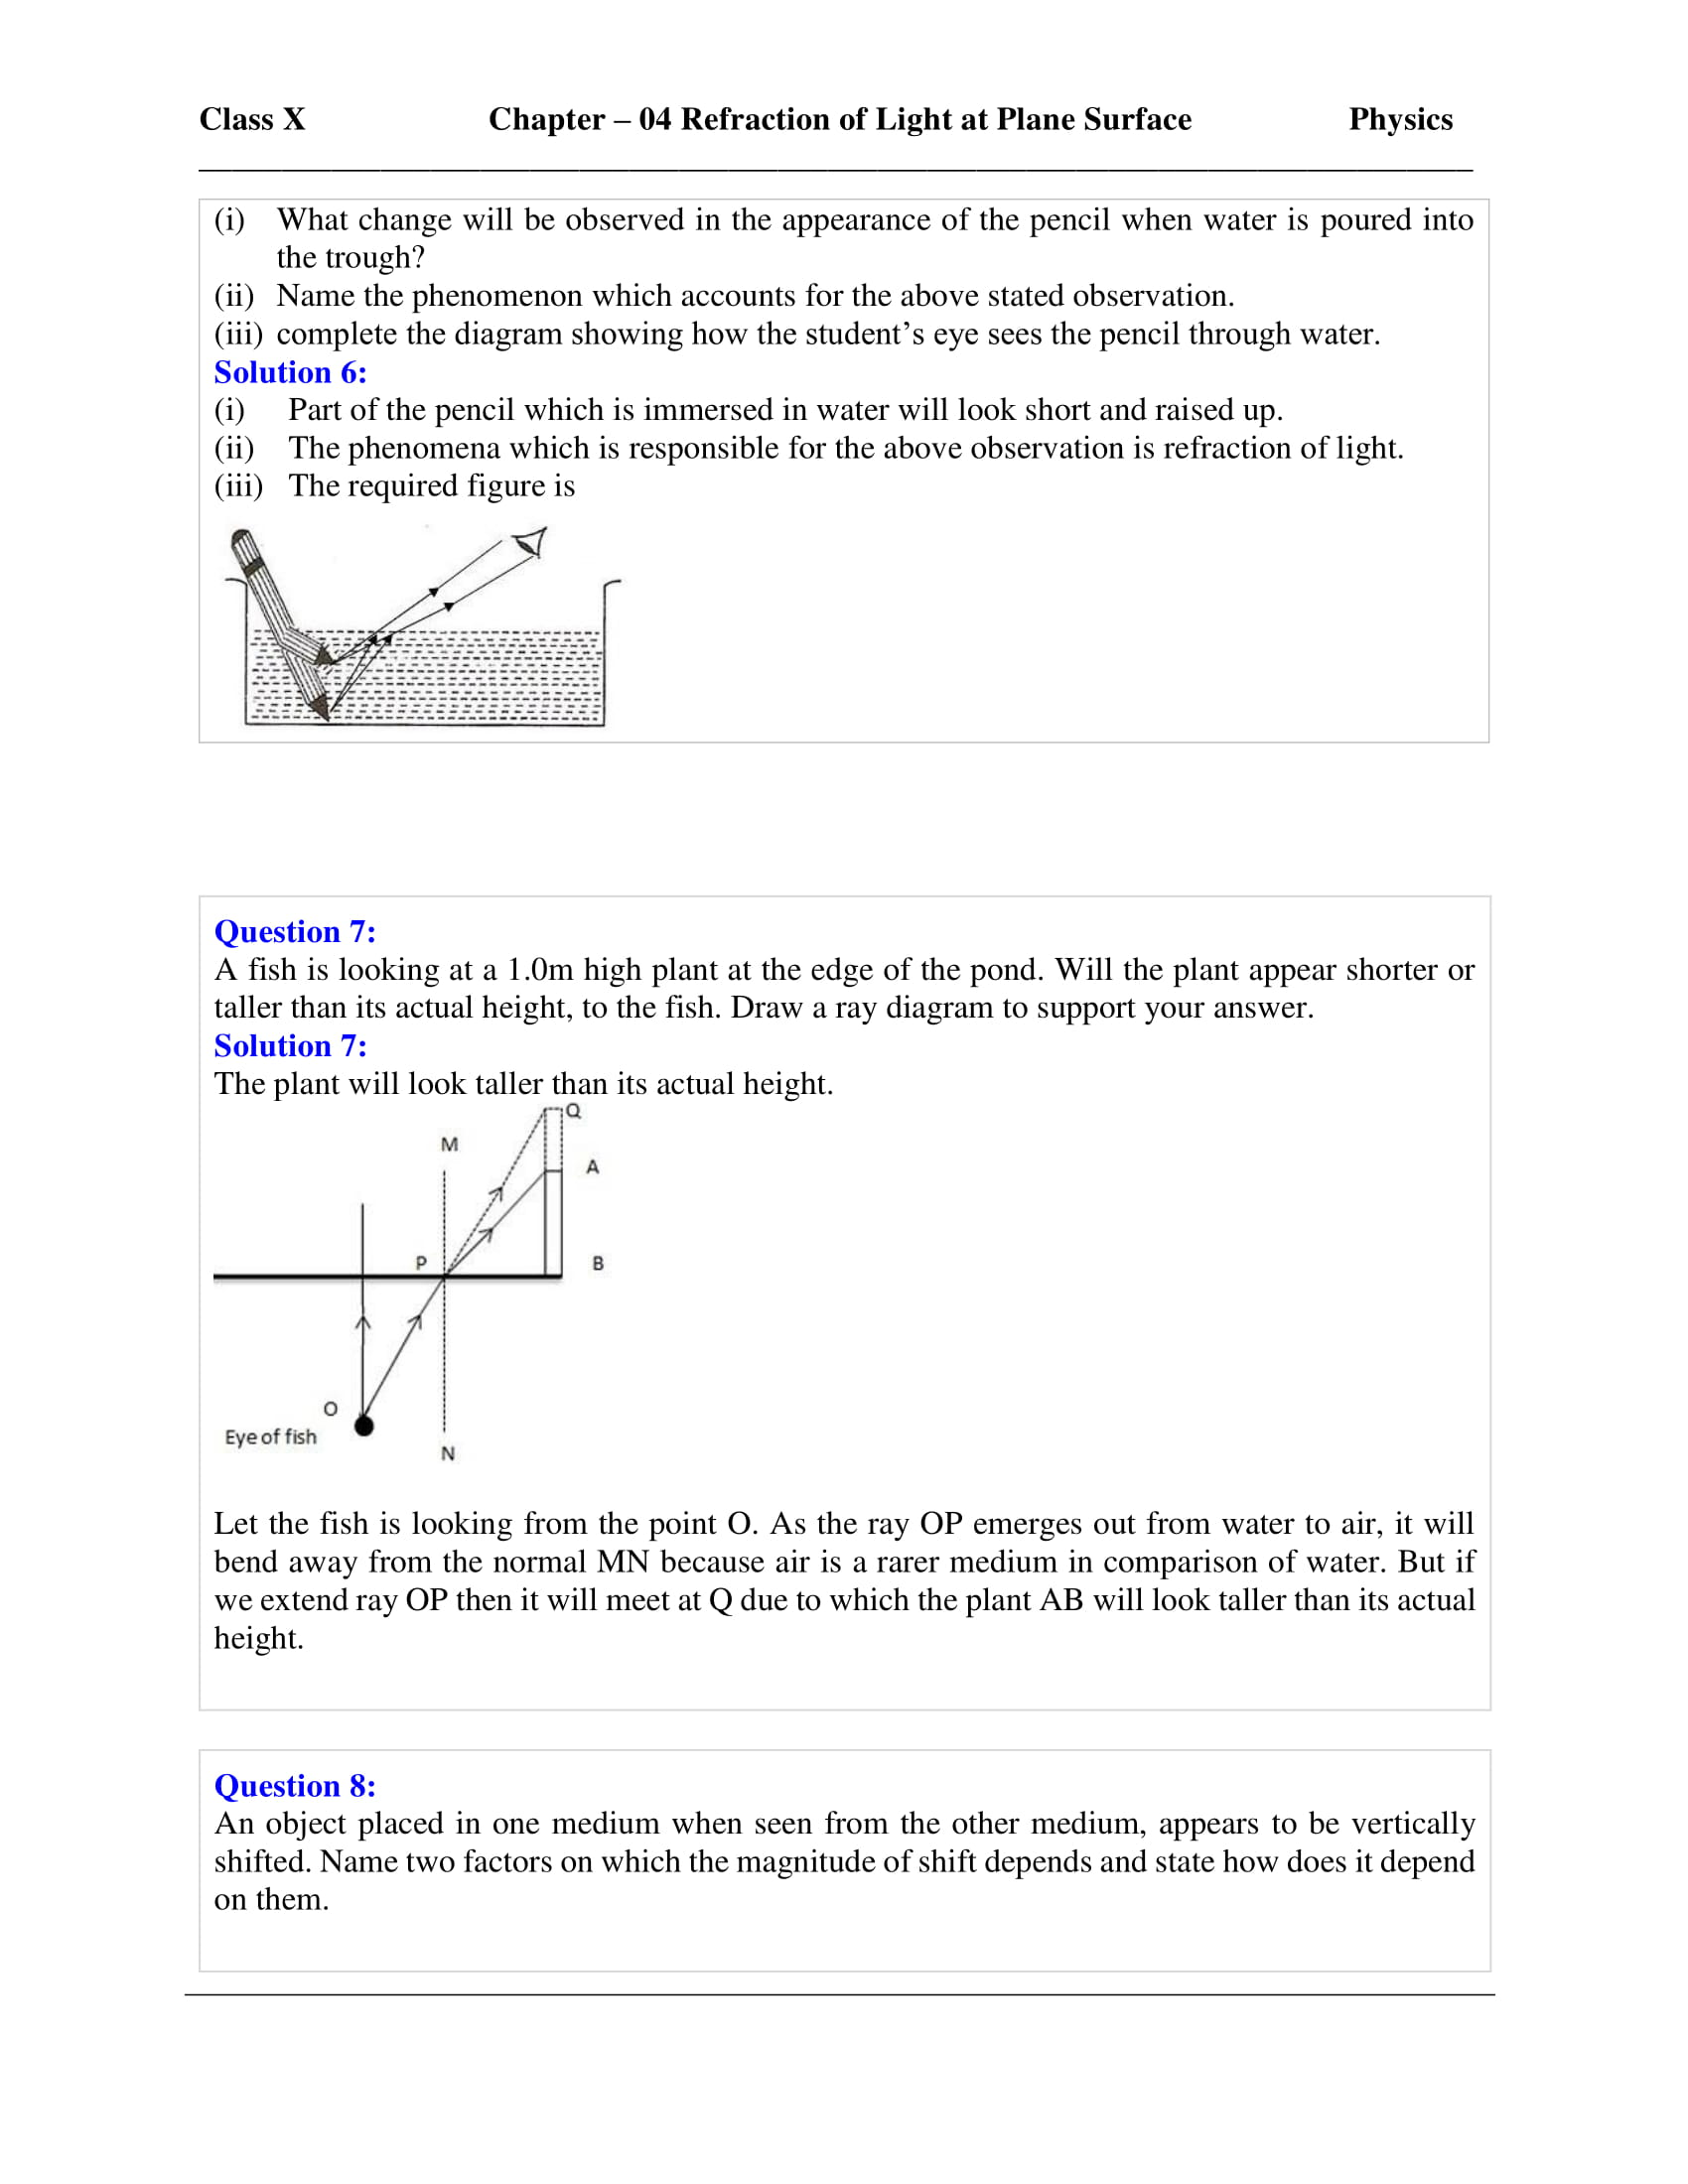 icse-selina-physics-solutions-class-10-chapter-4-refraction-of-light-at-plane-surfaces-25